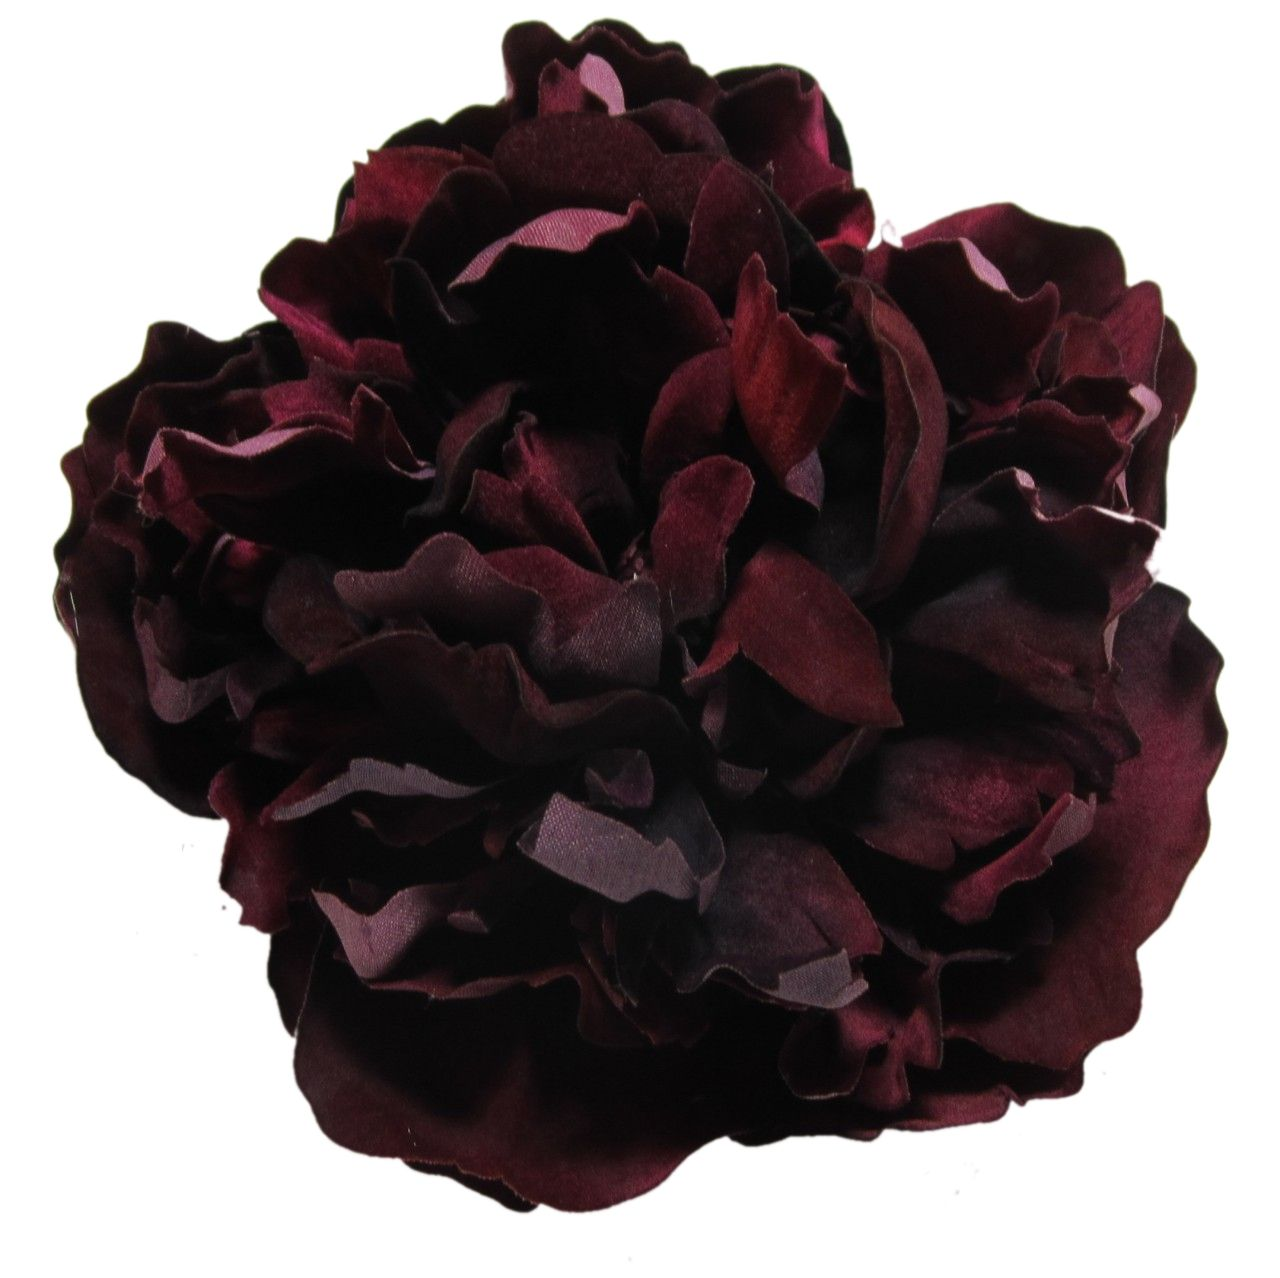 HairFlowers.net - Black Cherry Red Peony Flower Hair Clip and Pin, $14.99 (http://www.hairflowers.net/color/black-cherry-red-peony-flower-hair-clip-and-pin.html)